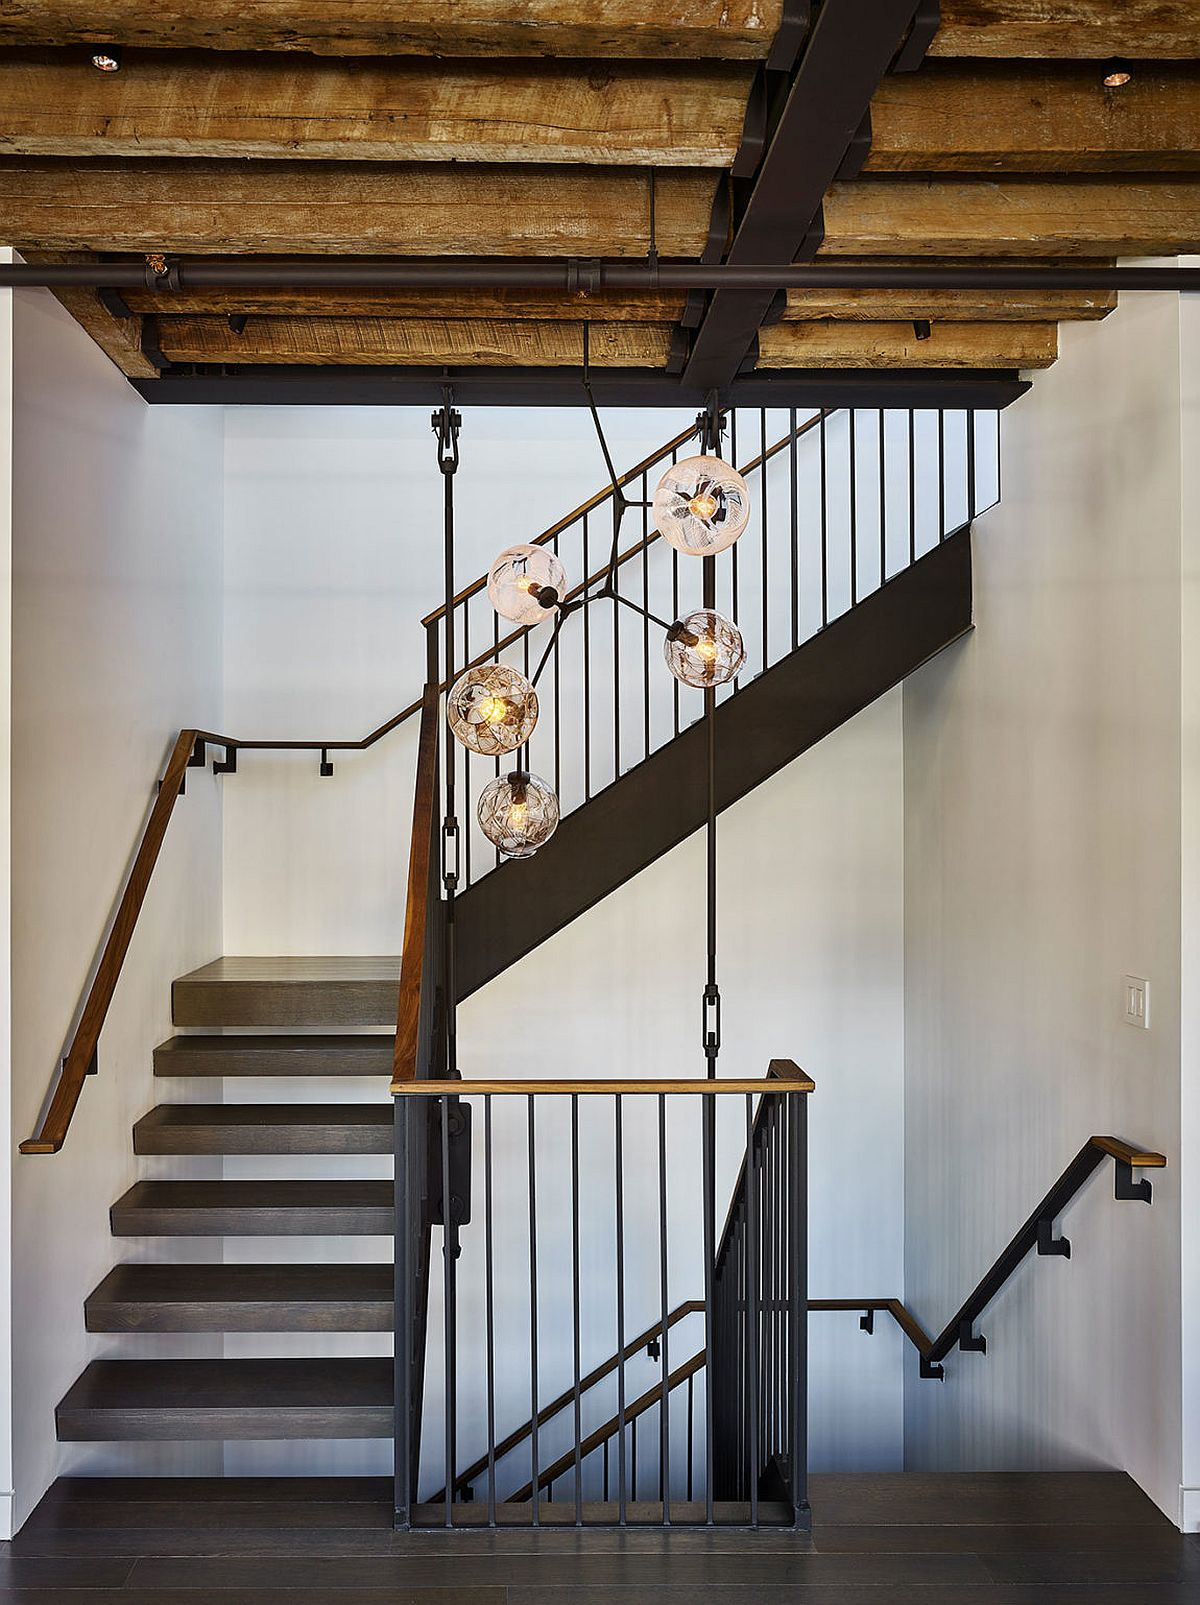 Exposed wooden beams and metallic elements inside the New York penthouse